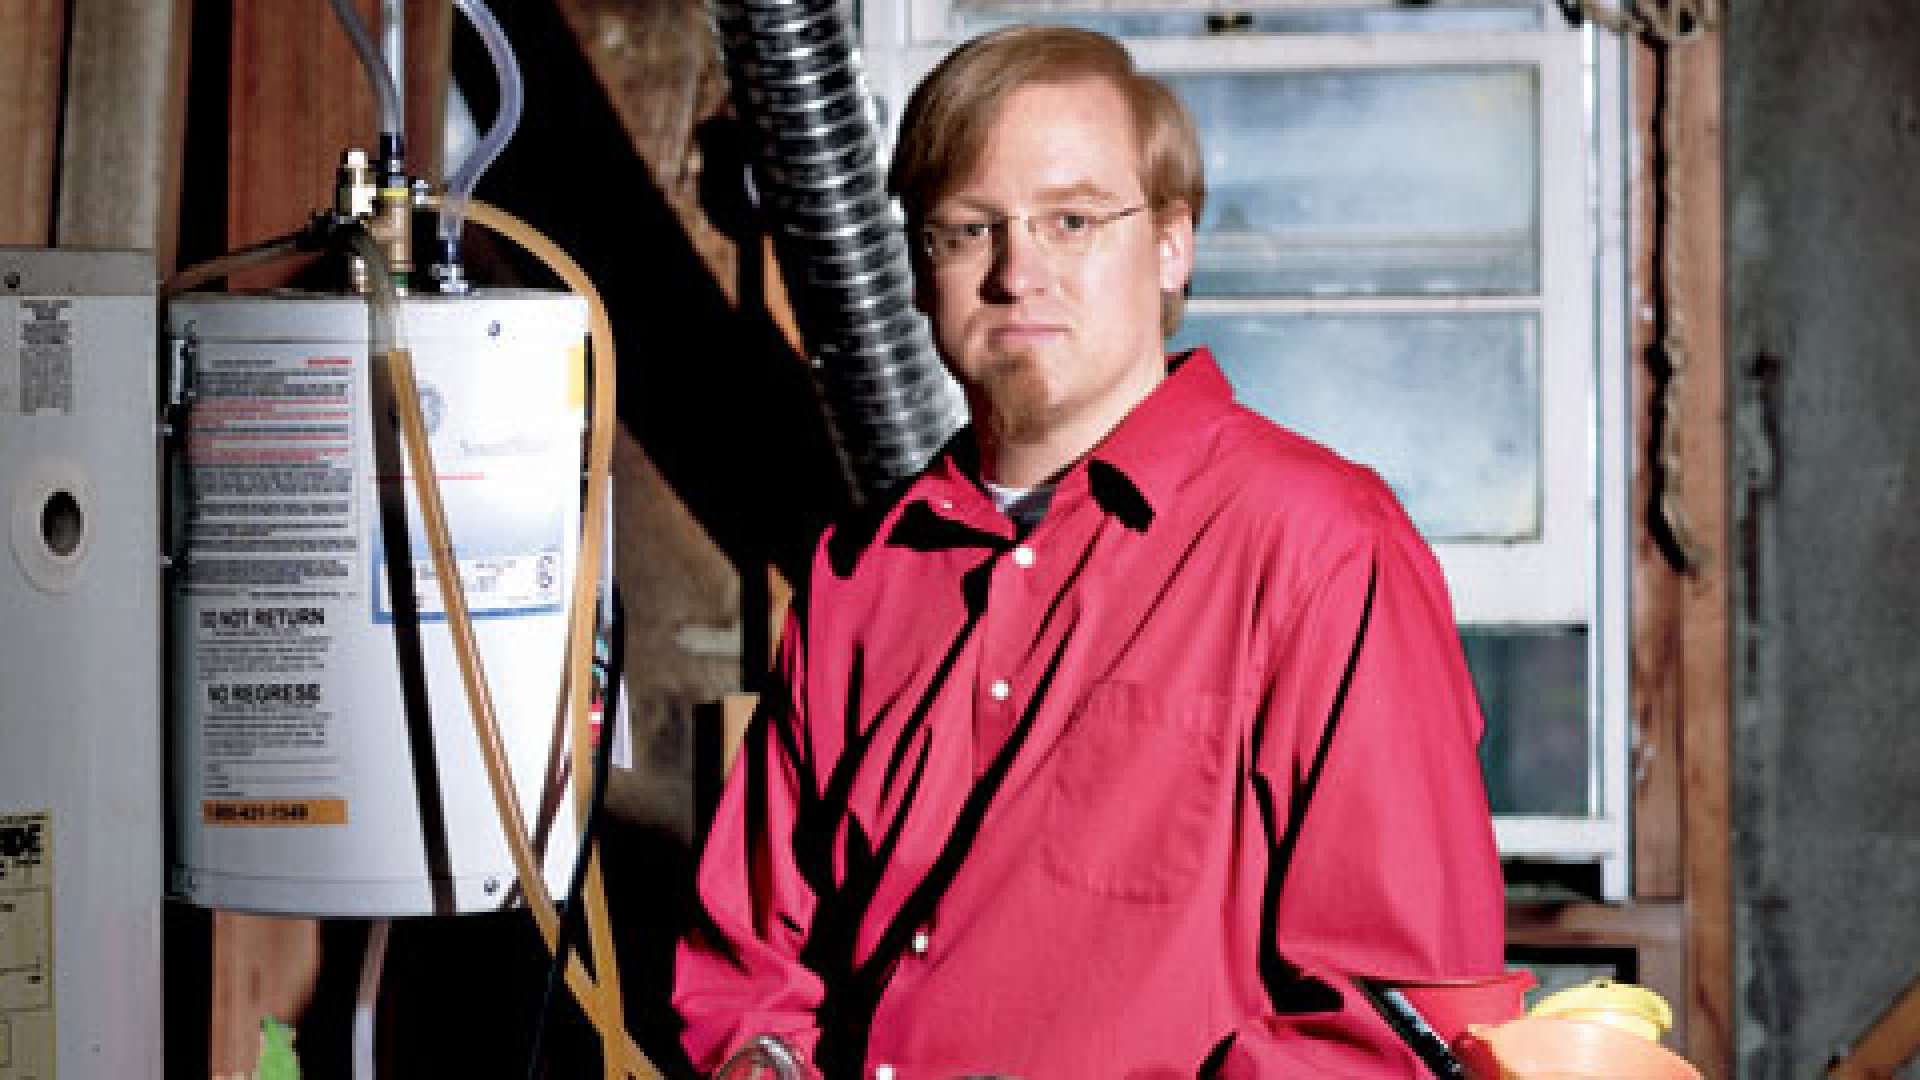 <strong>GREASE LIGHTNING</strong> James Peret says he and his partners are ready to go into production on their fryer-oil-powered generator.